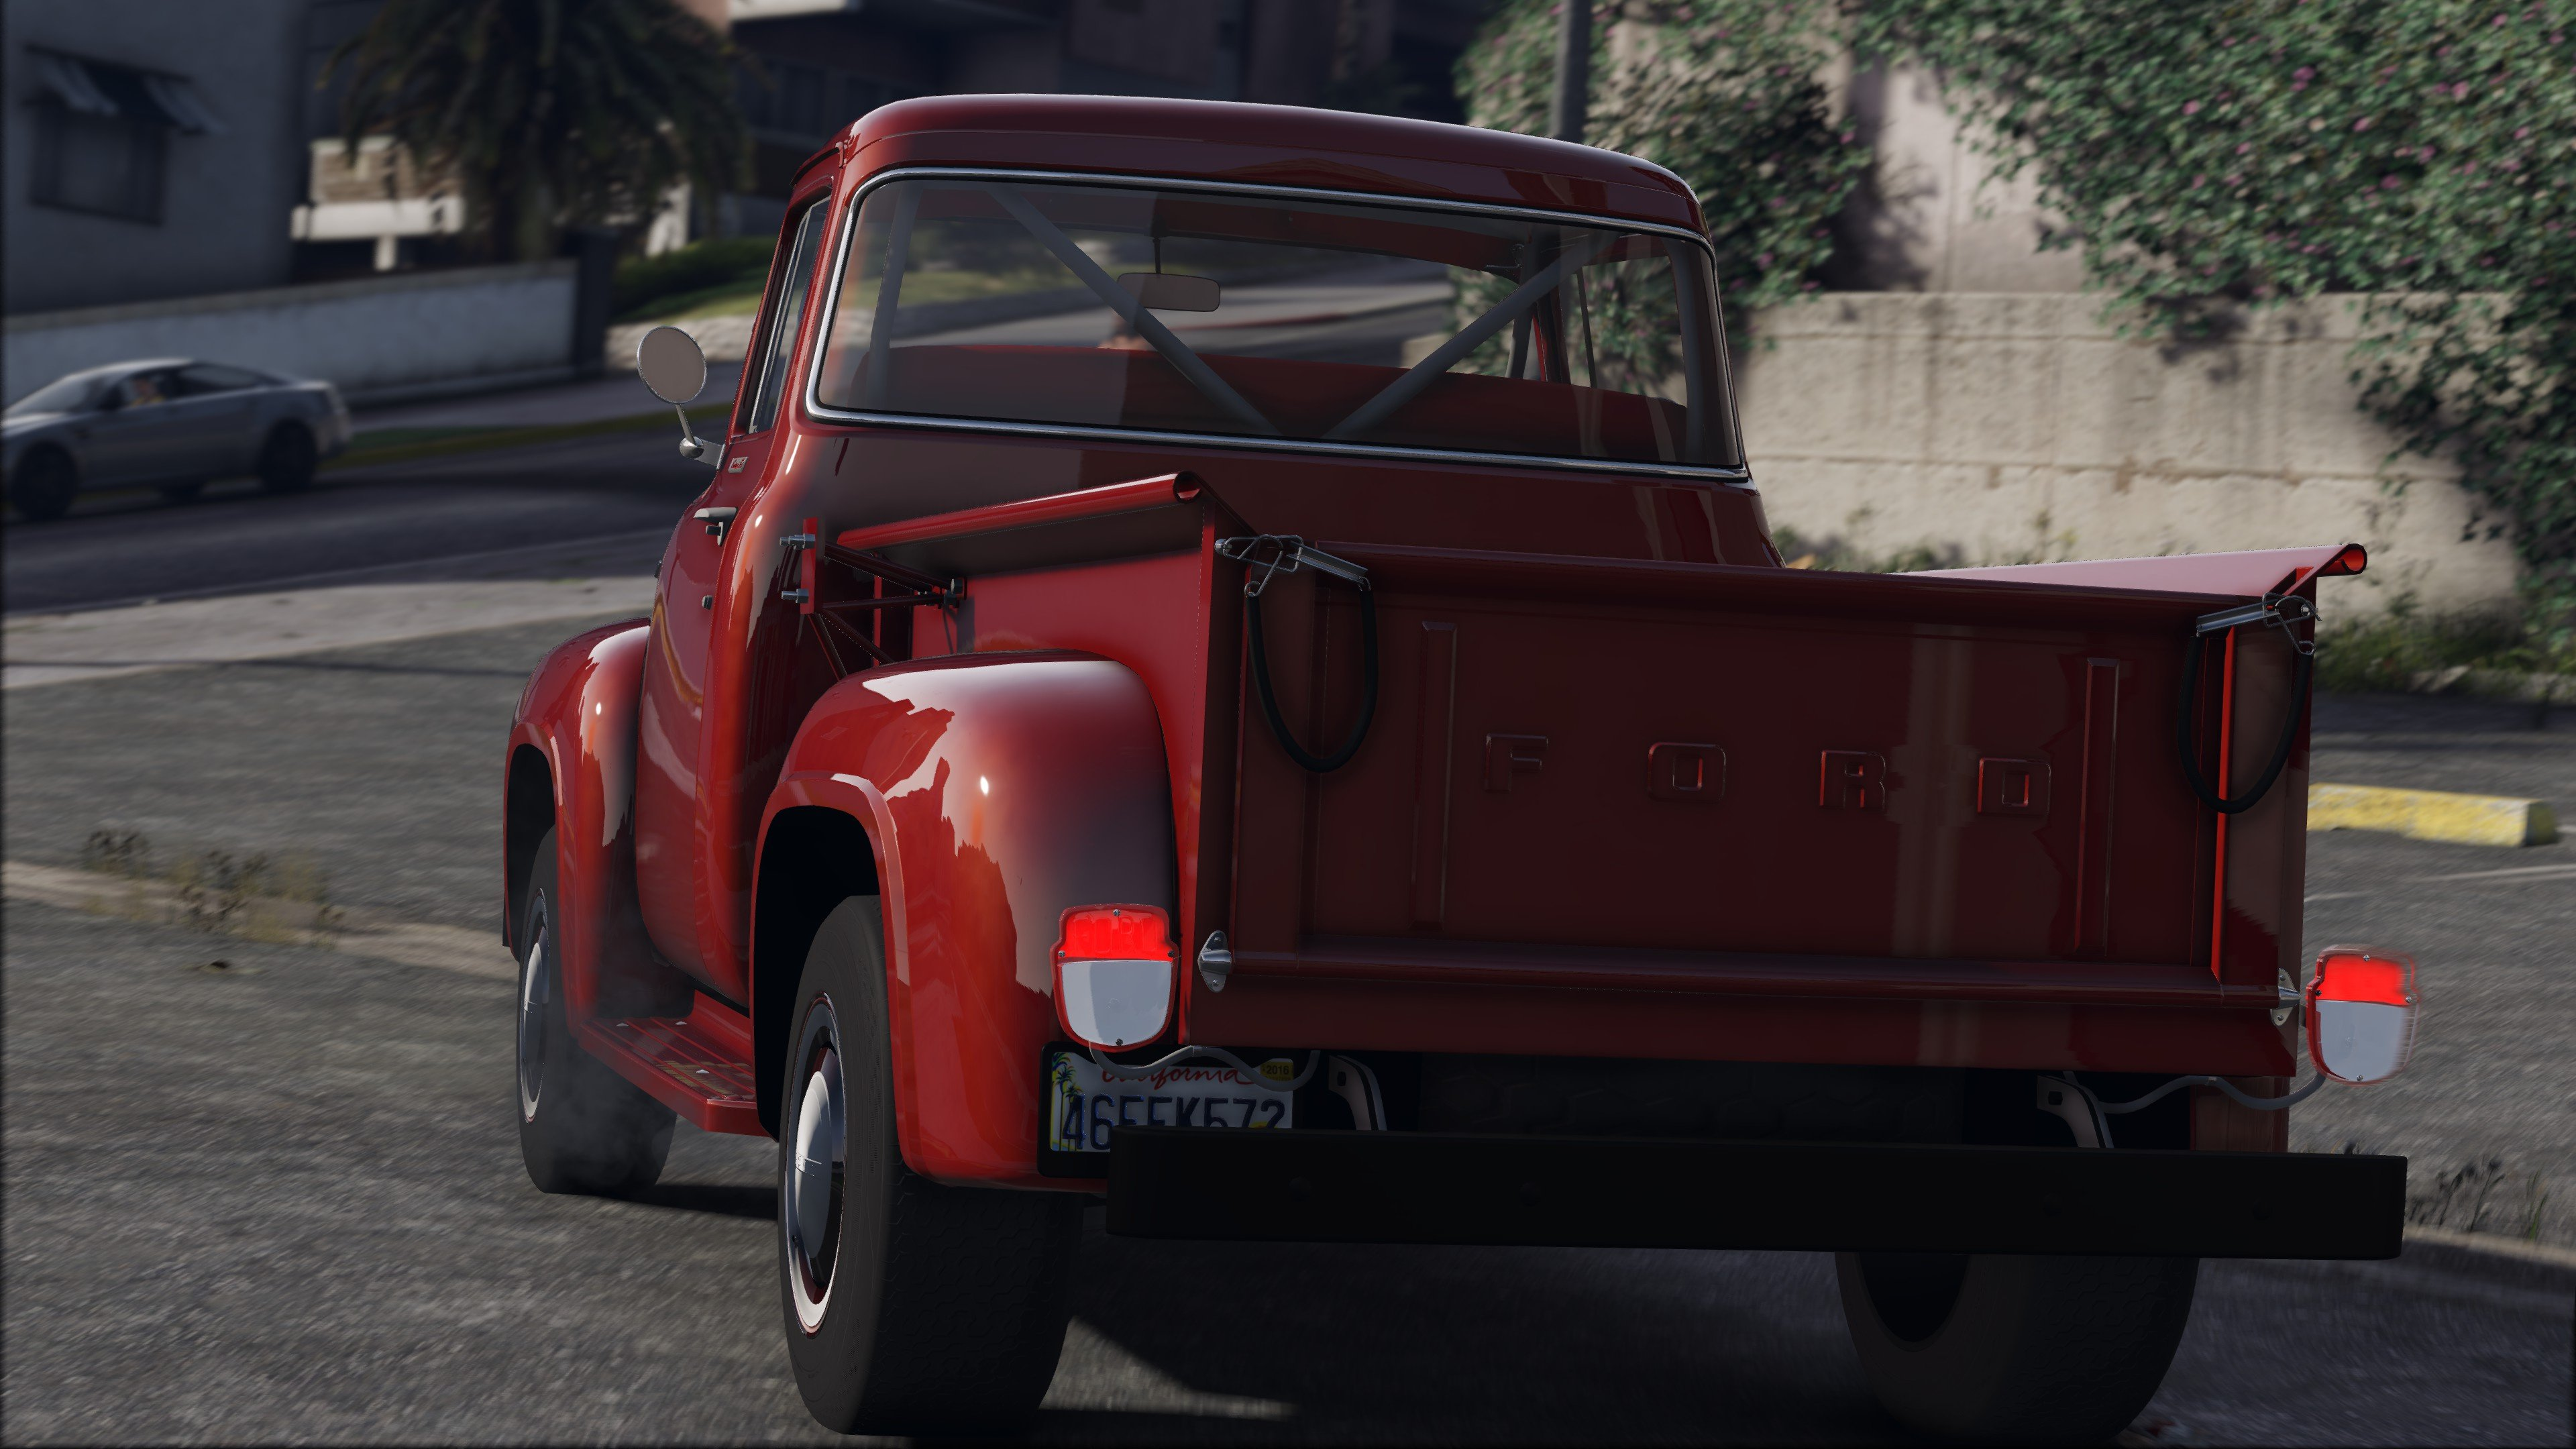 Dodge Ram Runner >> '56 Ford F100 [FH3] | ADDON | Animated Engine & Exhaust - GTA5-Mods.com